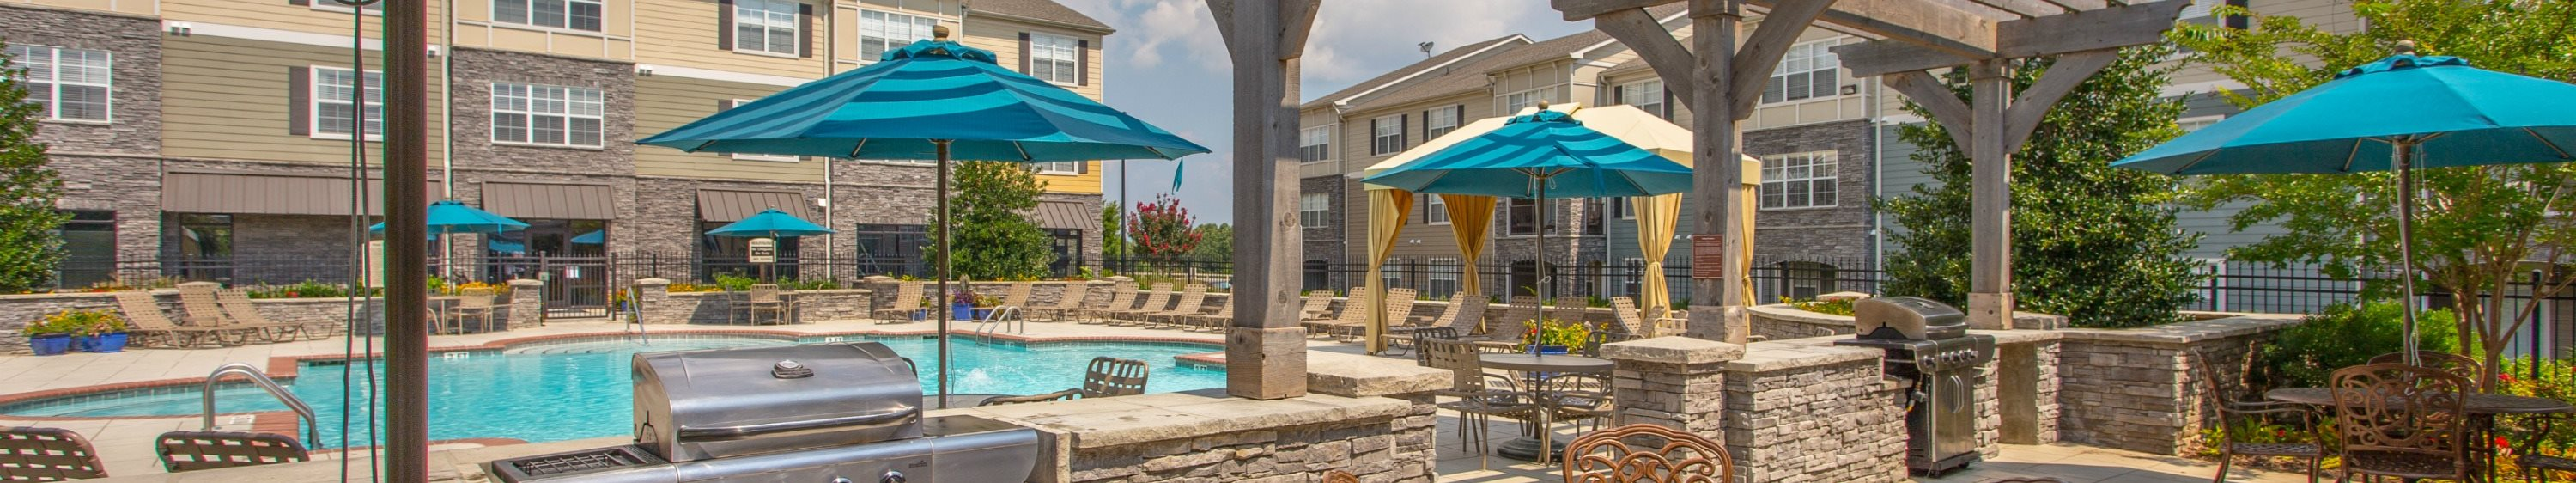 Sparkling Swimming Pool at Amberleigh Ridge Apartments in Chattanooga, TN